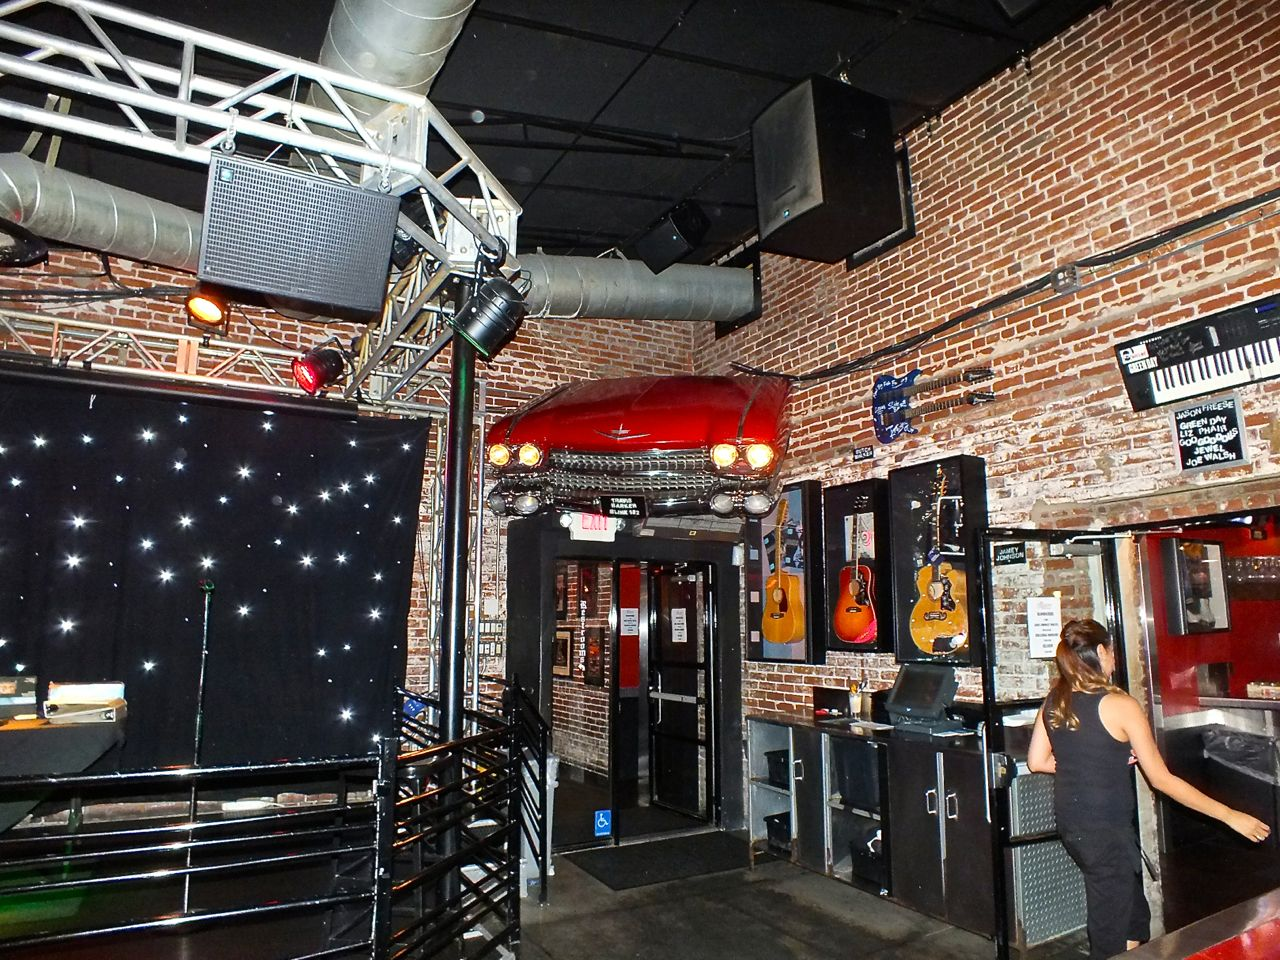 The Slide Bar Rock And Roll Kitchen